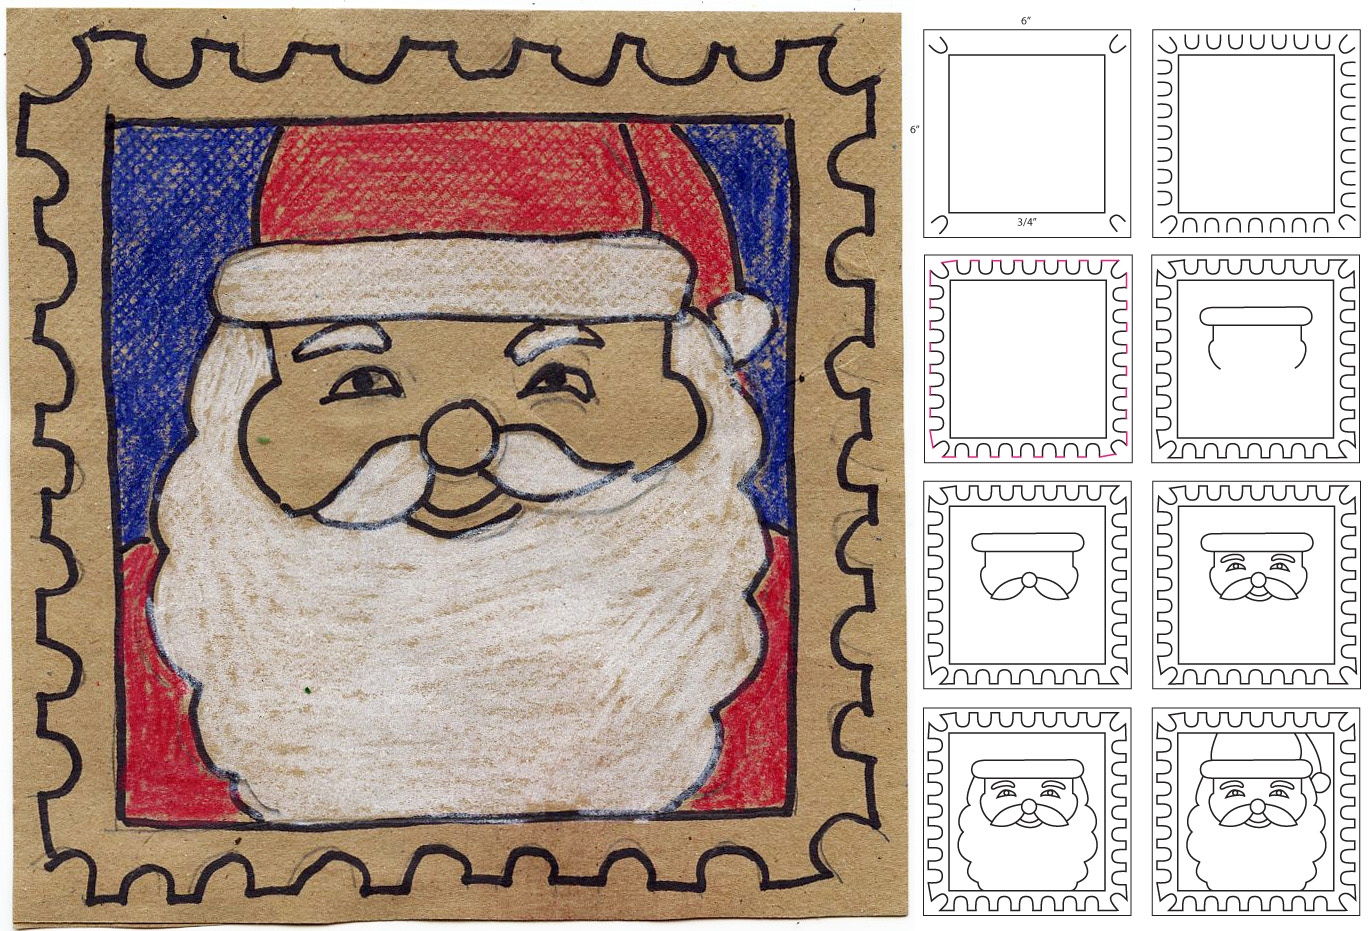 How To Draw a Santa Stamp - Art Projects for Kids